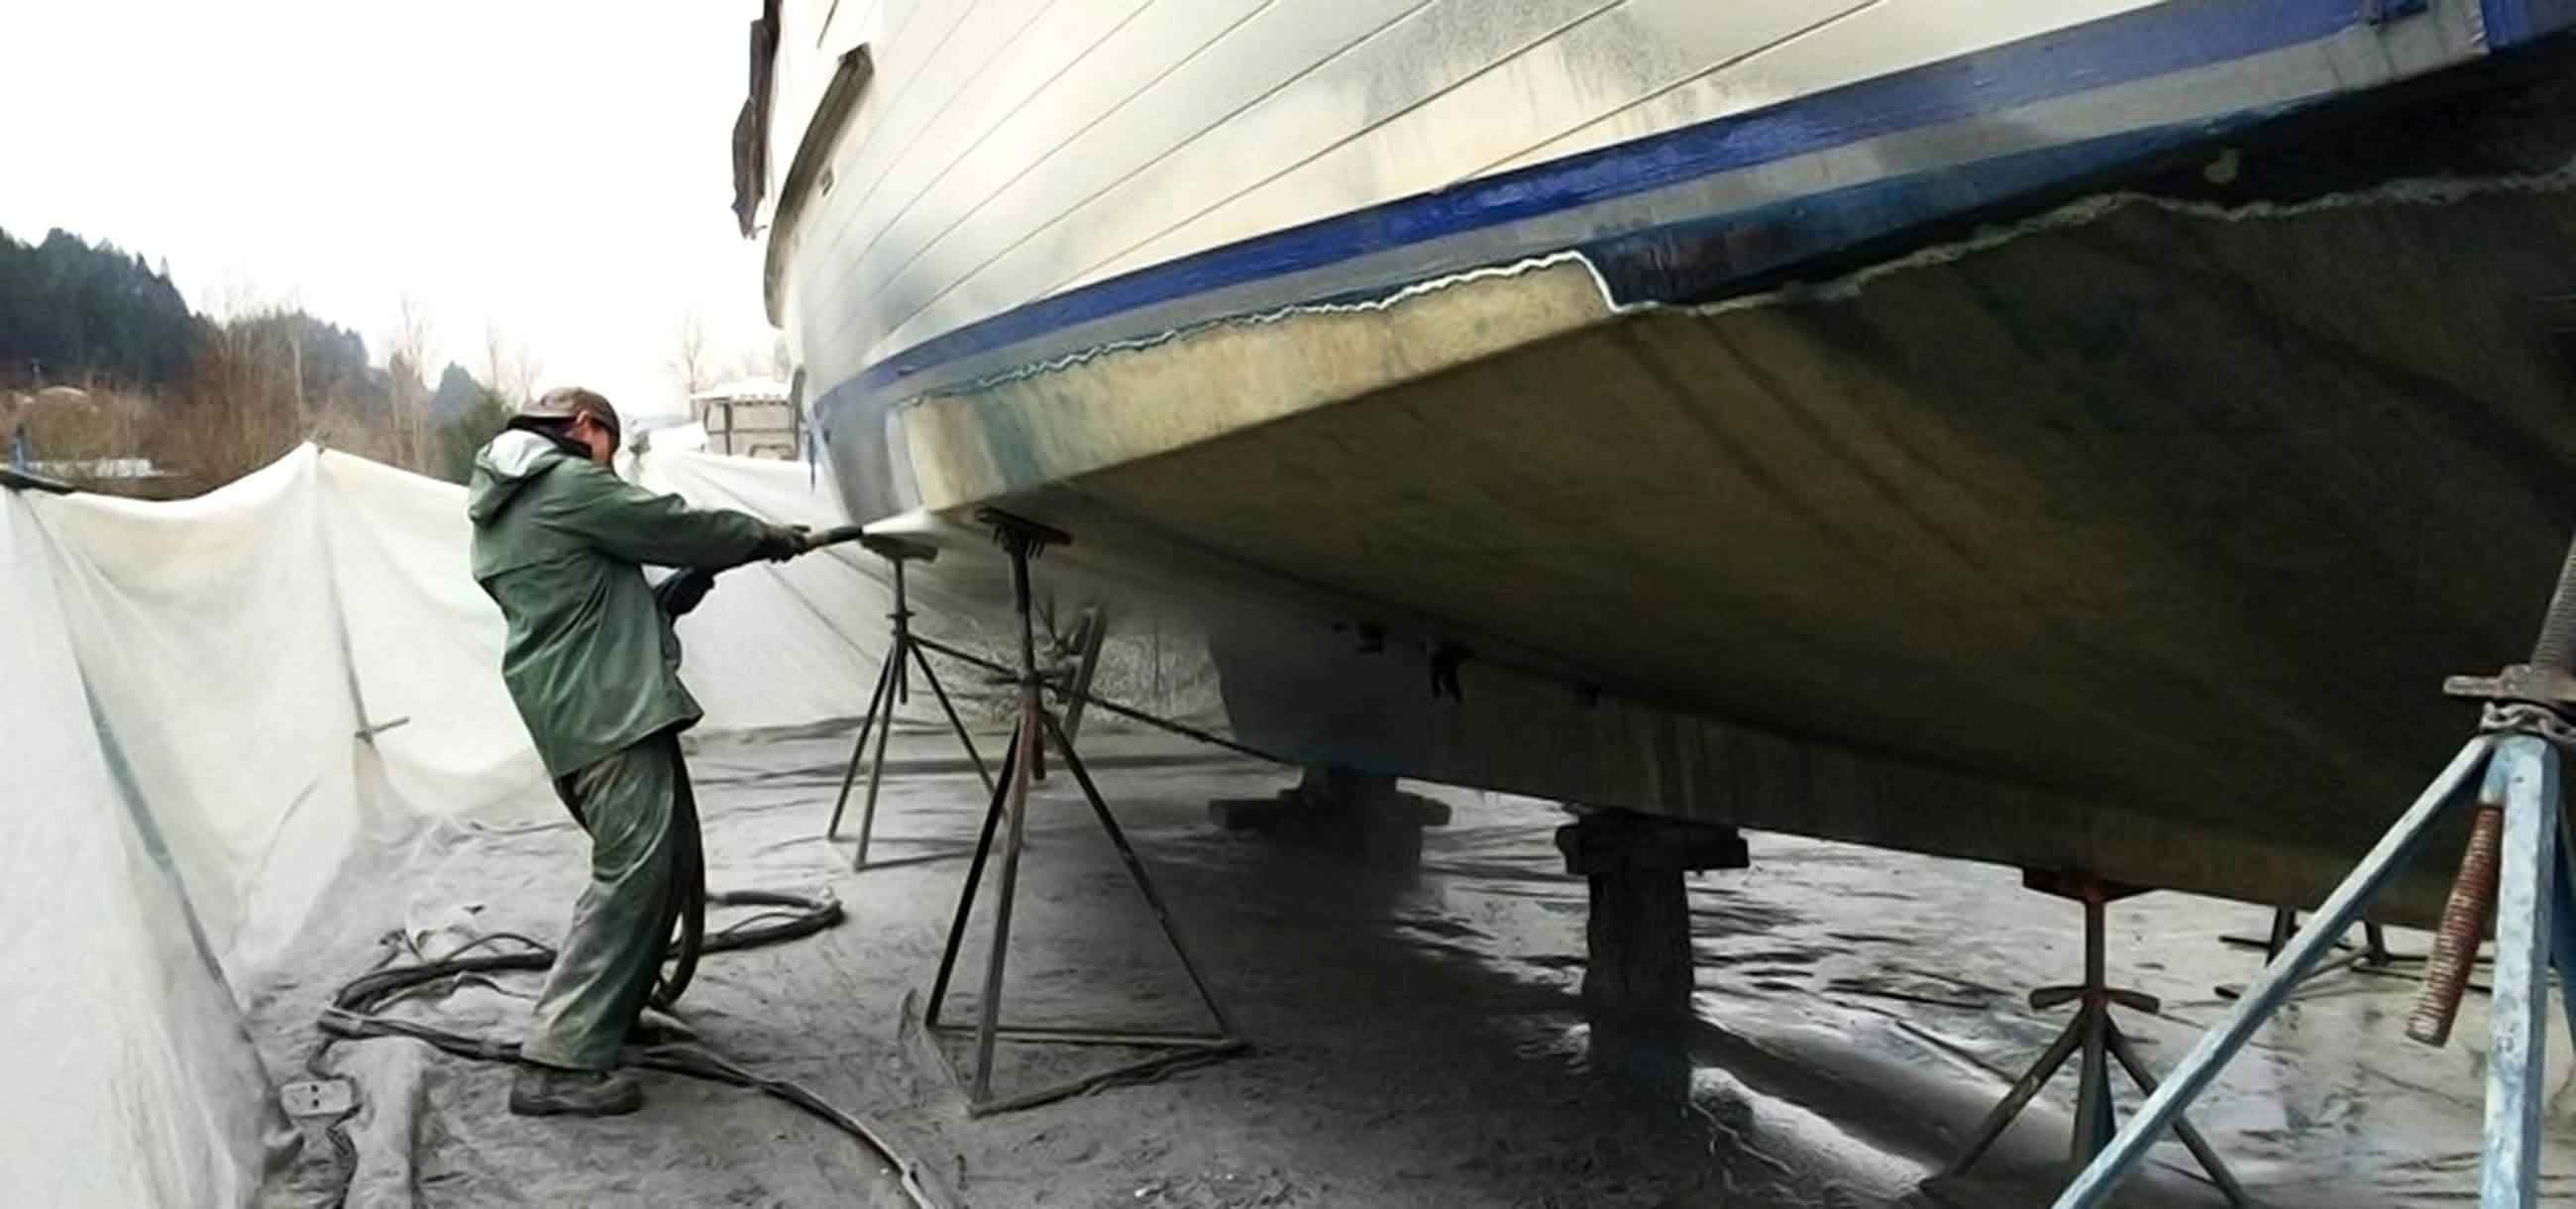 dustless blasting the hull of a boat